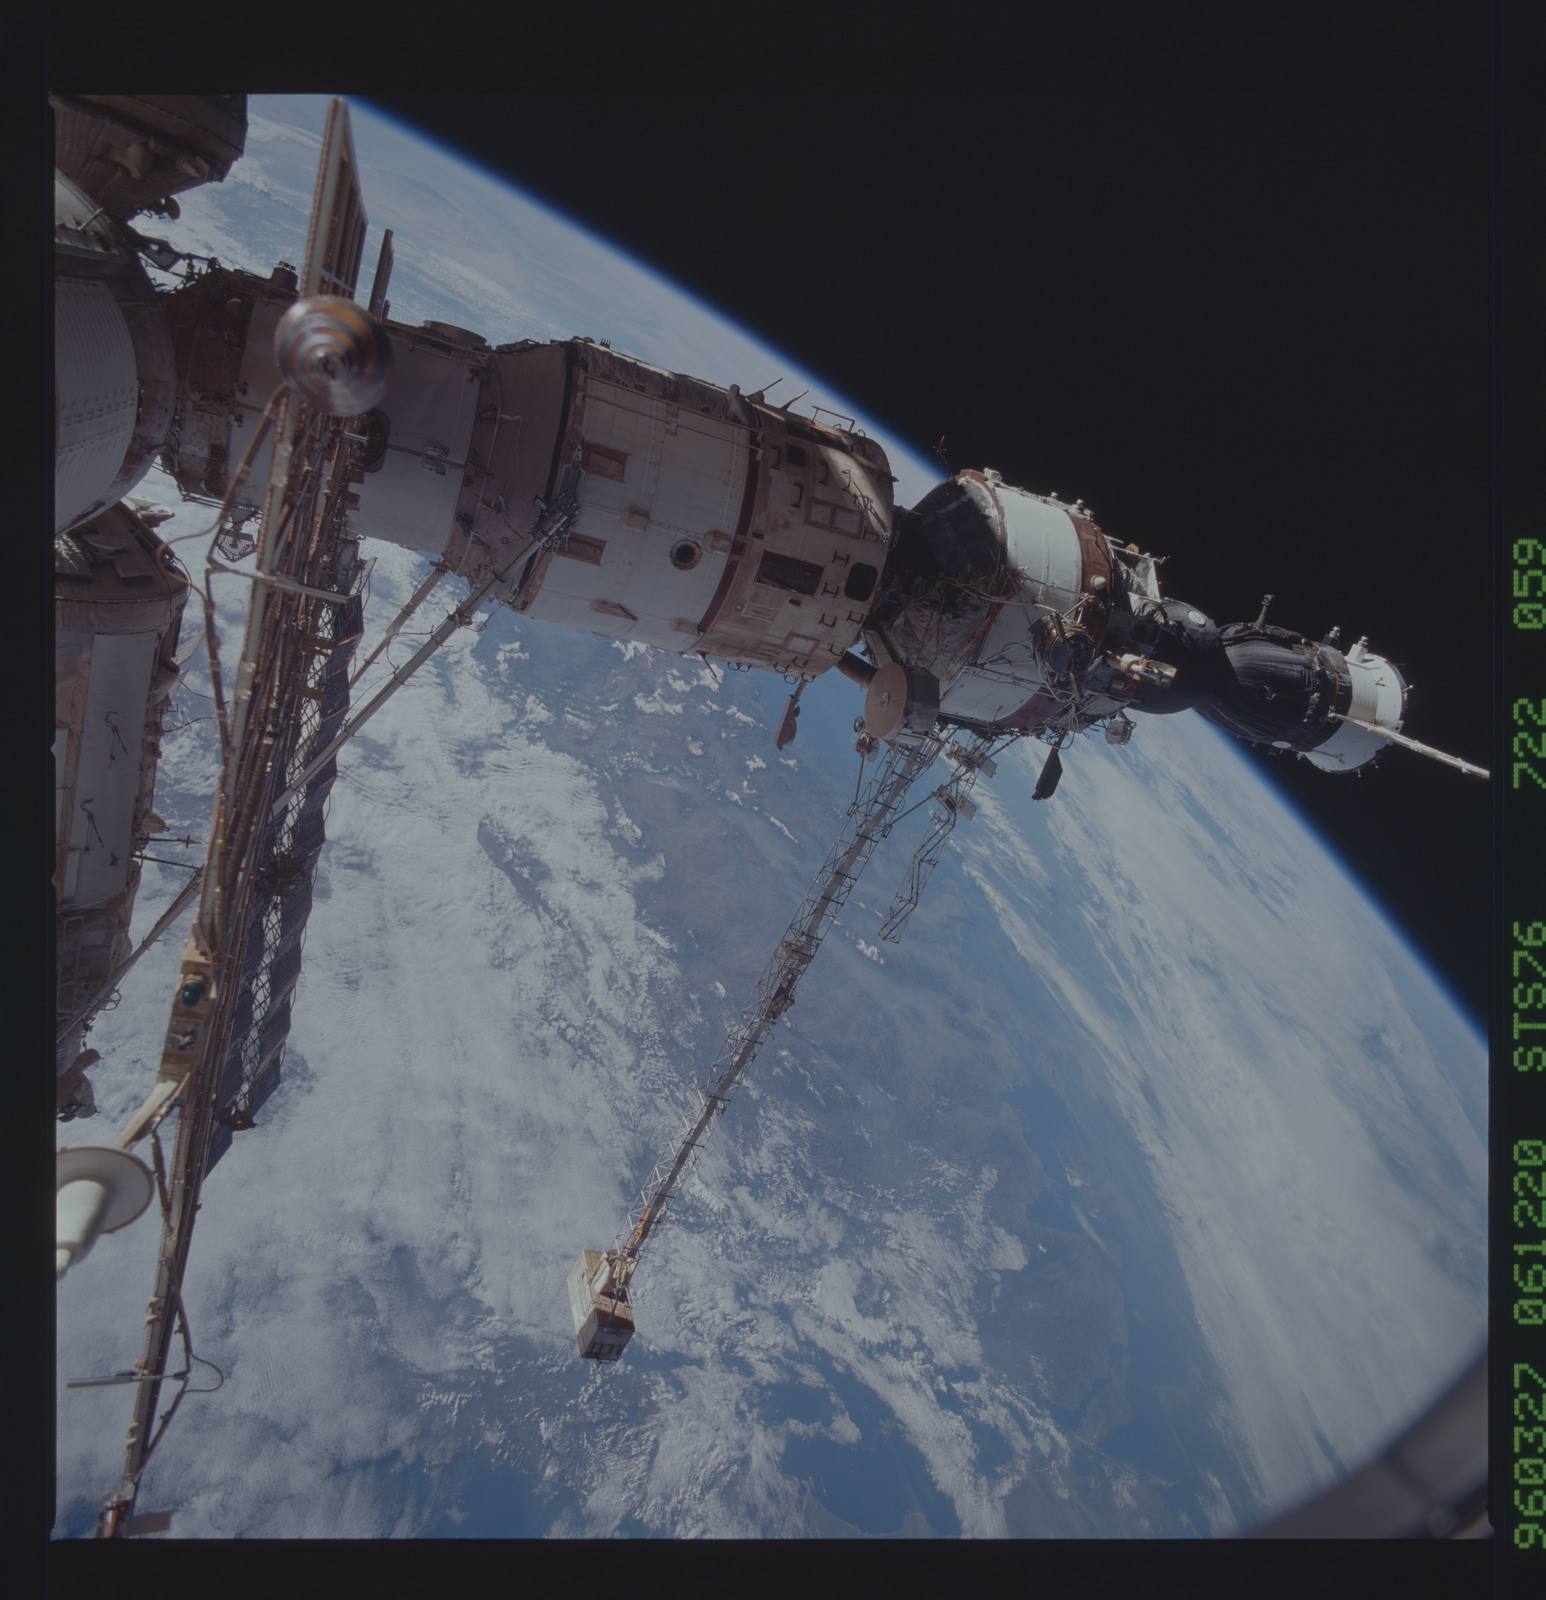 STS076-722-059 - STS-076 - Mir Space Station views taken during STS-76 mission